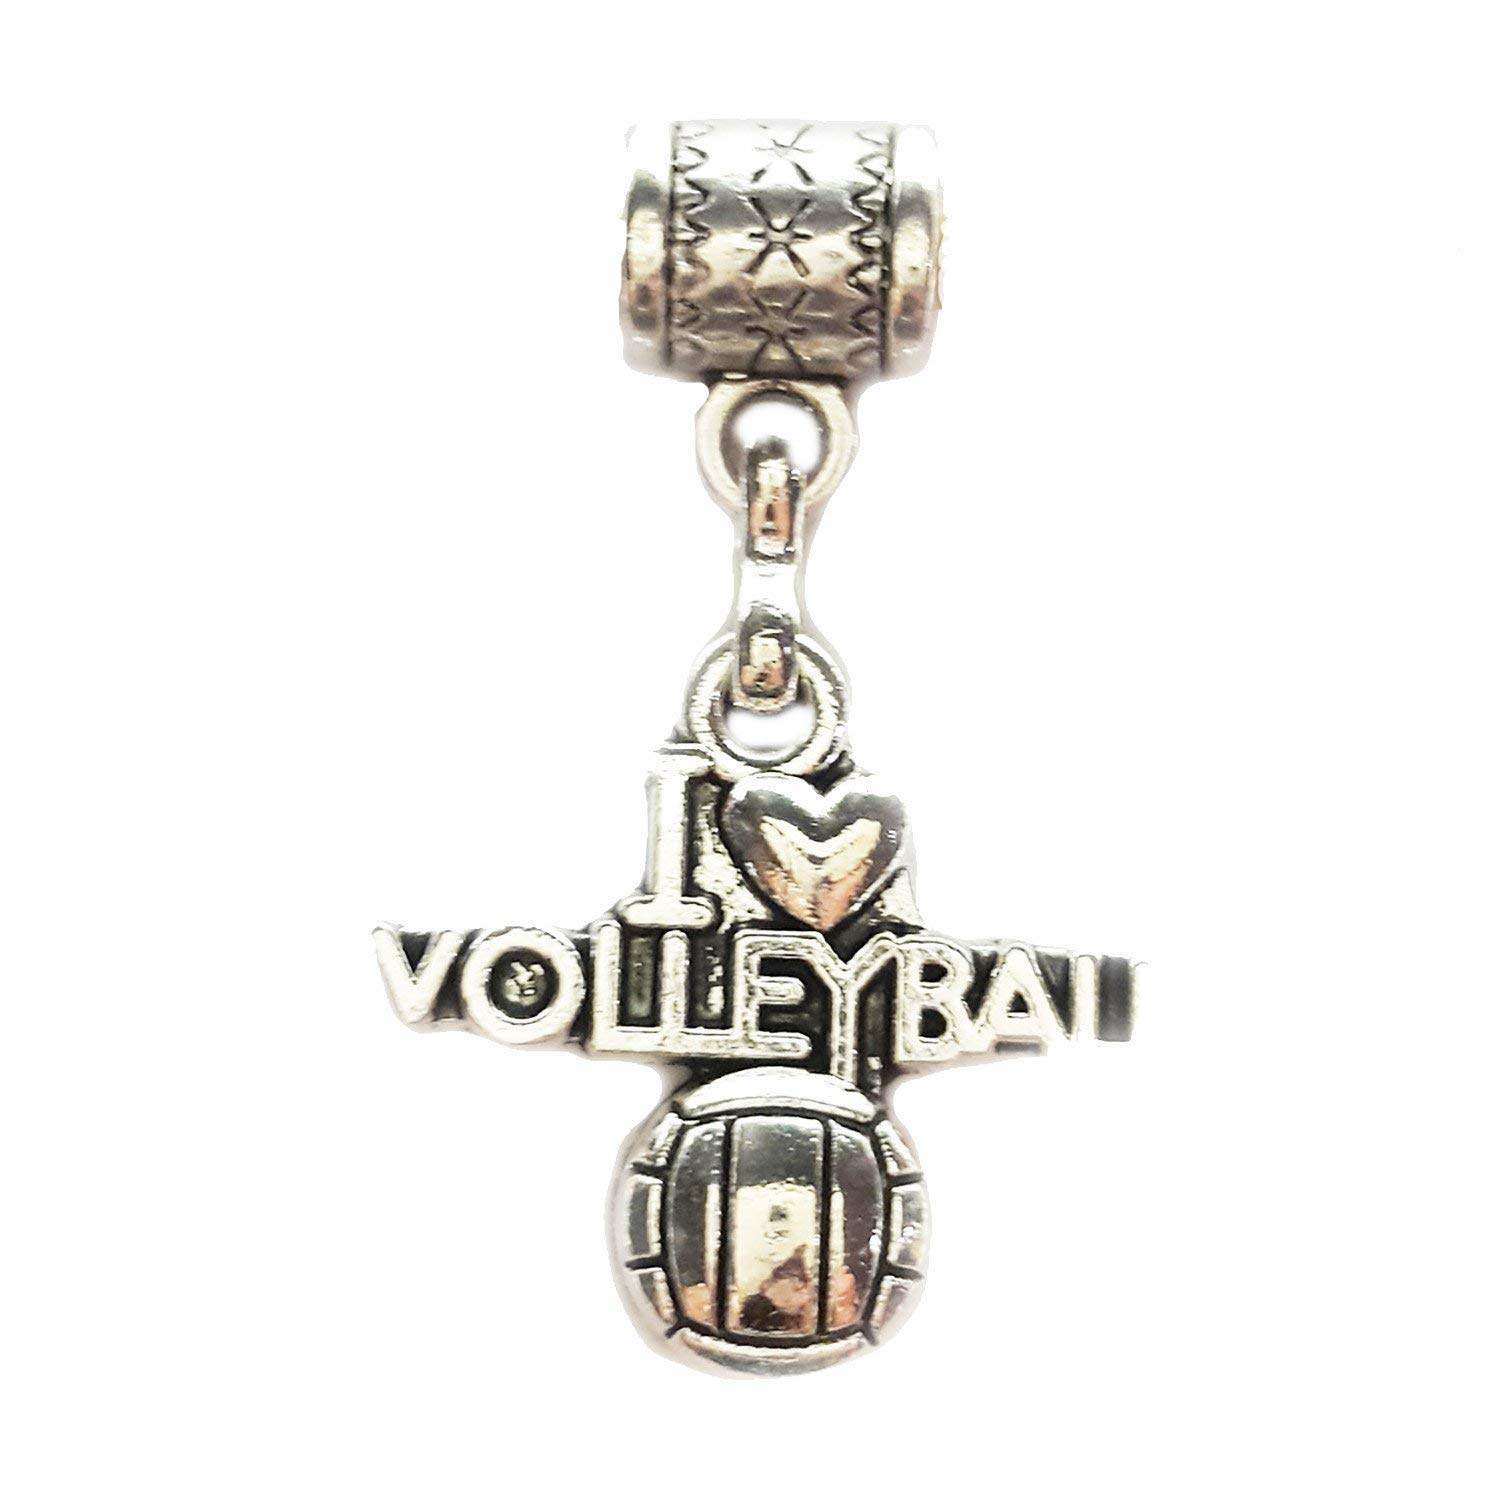 """I Love Volleyball charm"" is a Tibetan Silver Hanging charm by Mossy Cabin for large hole snake chain charm bracelets, or add to key chains, pendant necklaces or neck chains"